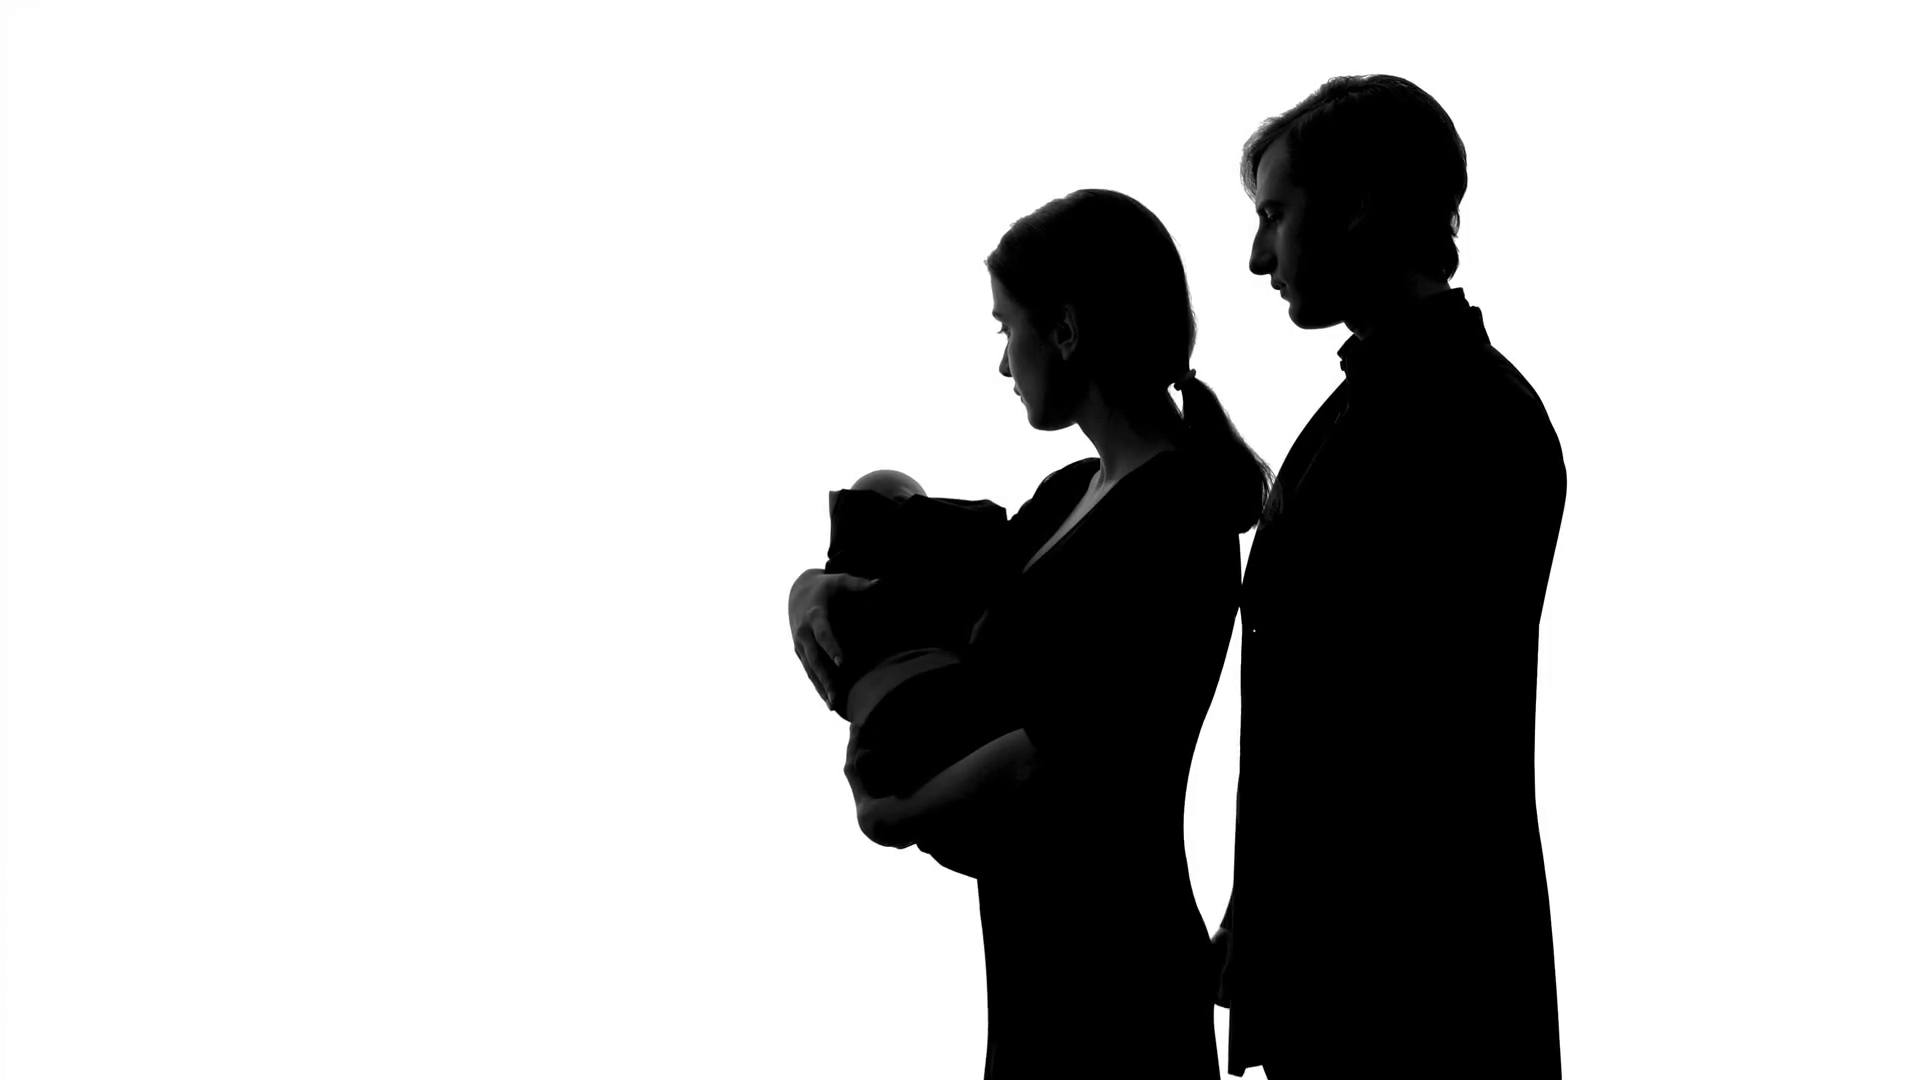 1920x1080 Silhouette Of Young Couple With Newborn Baby, Love And Care